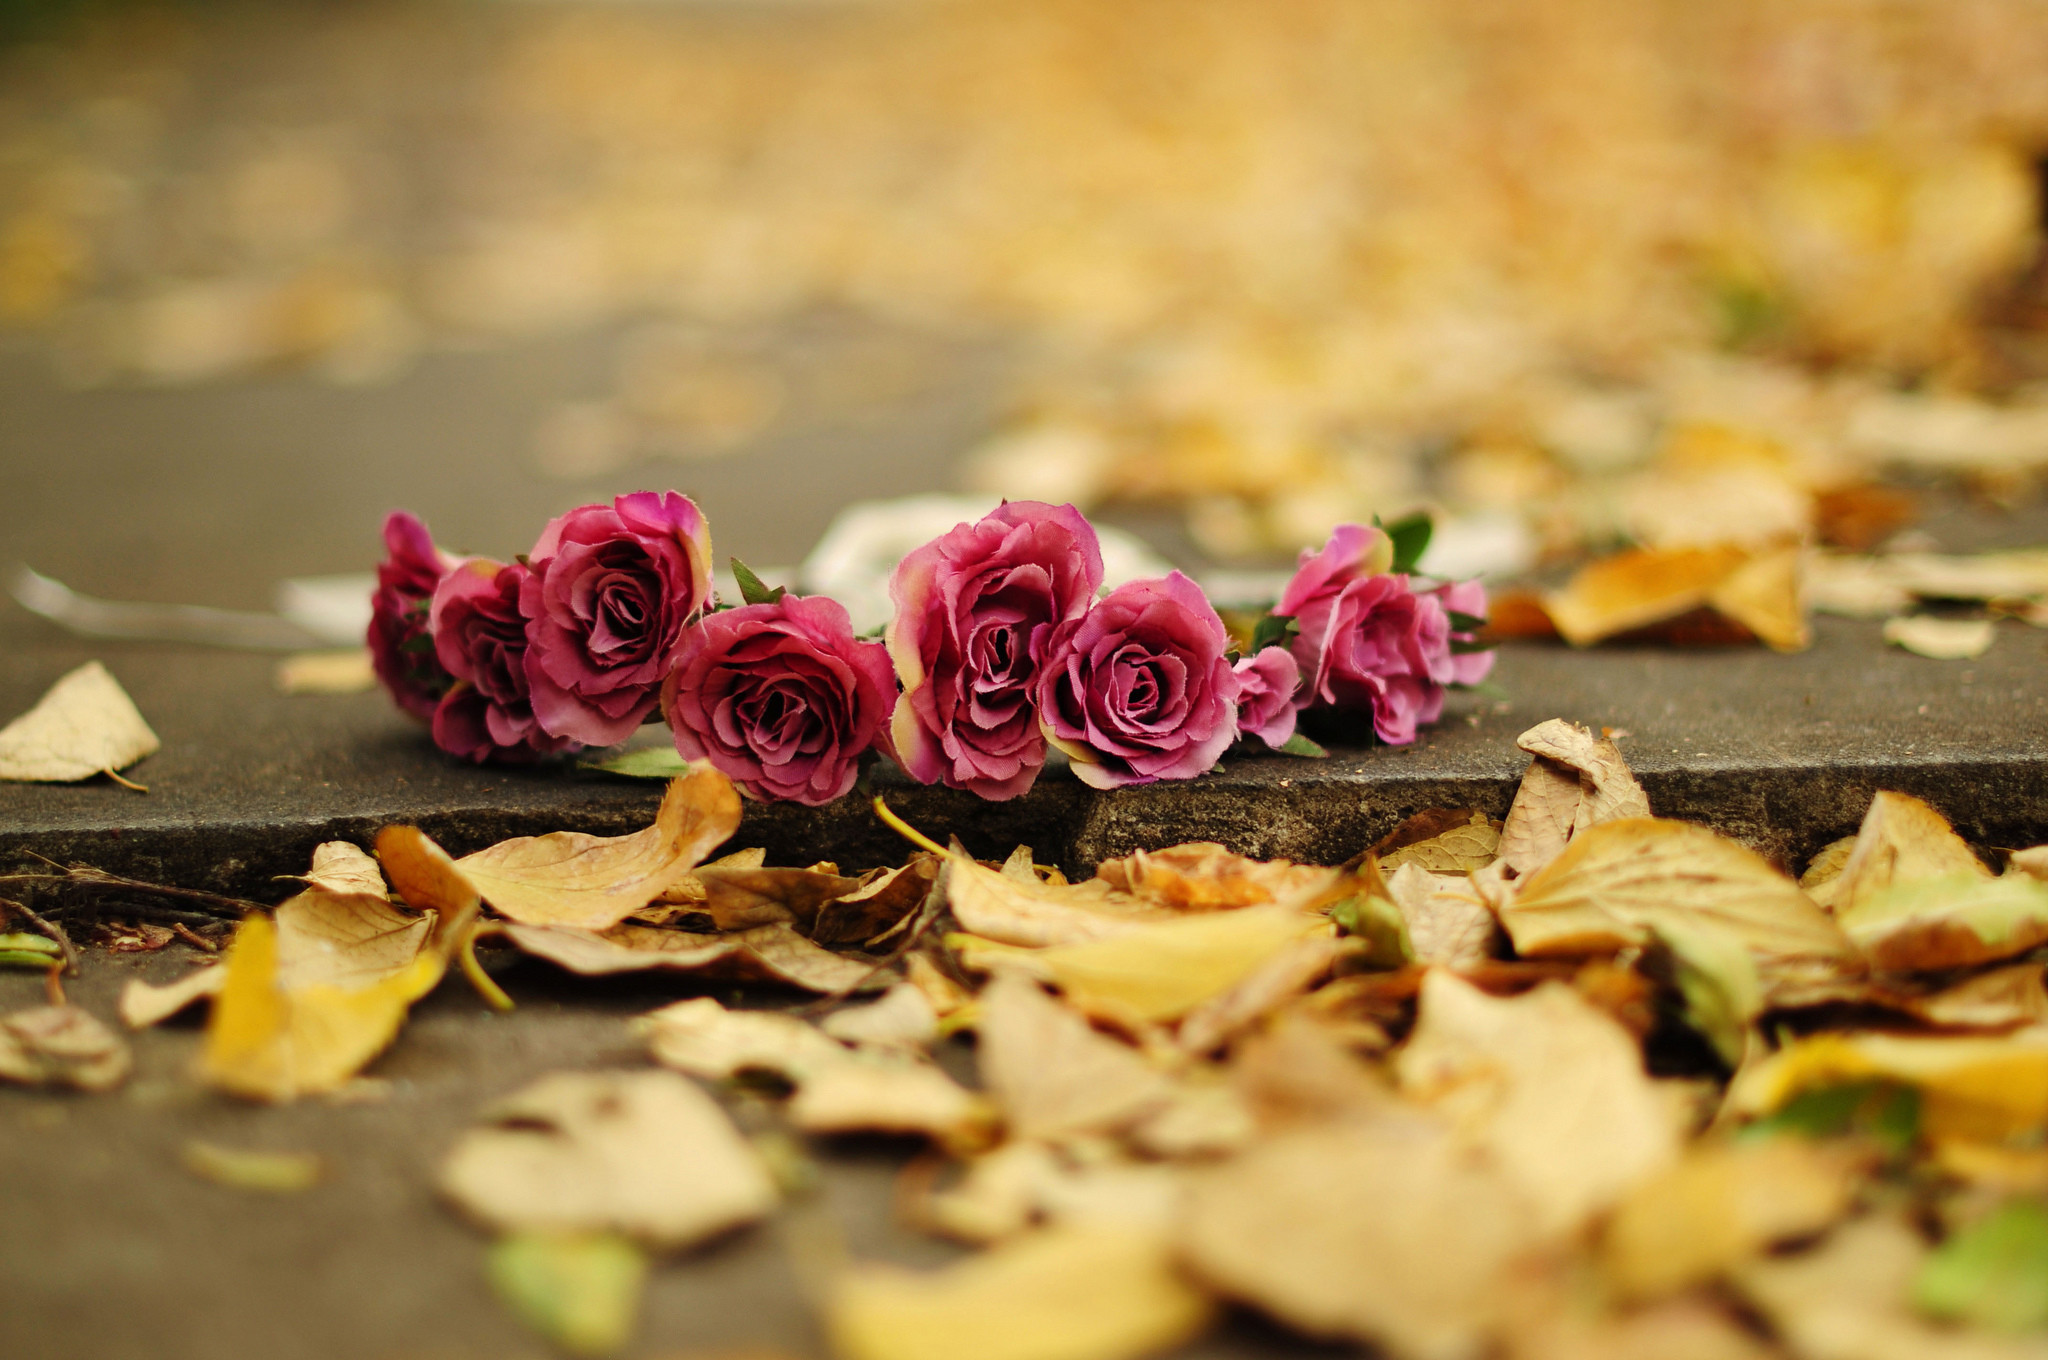 Fall Flowers Wallpaper 49 Images